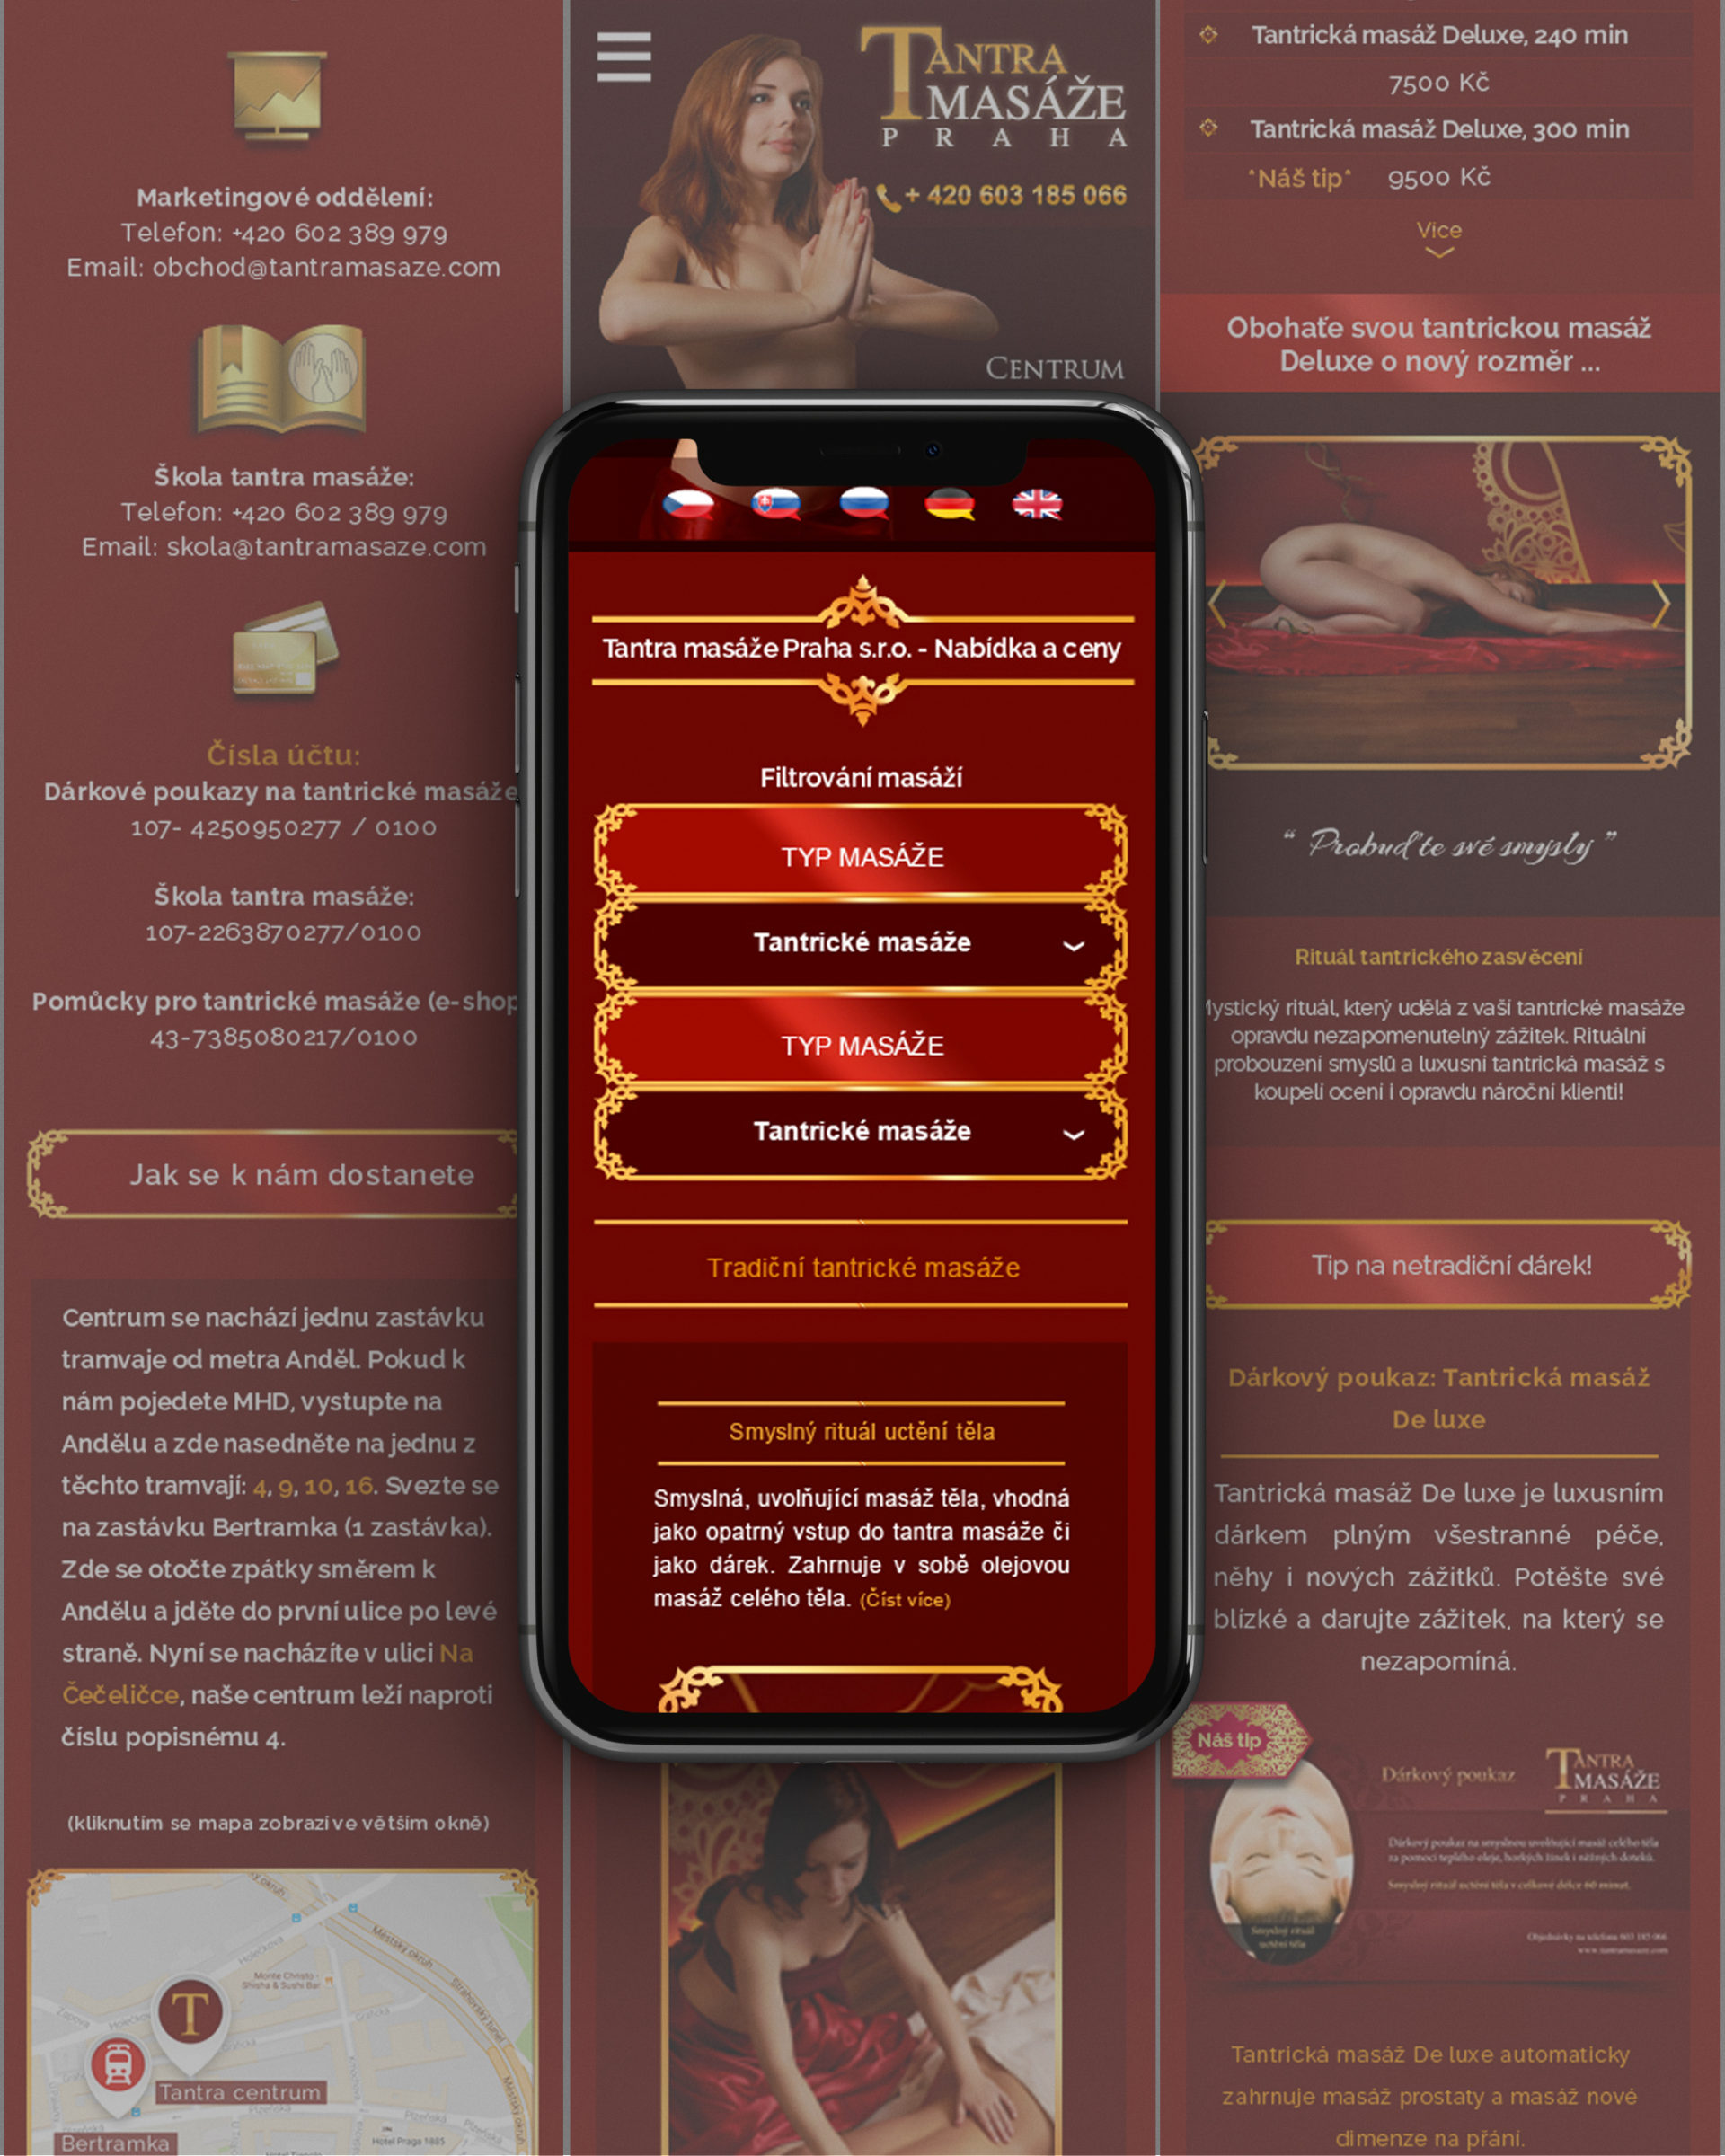 Mobile Version Of The Tantra Website Rodesigns